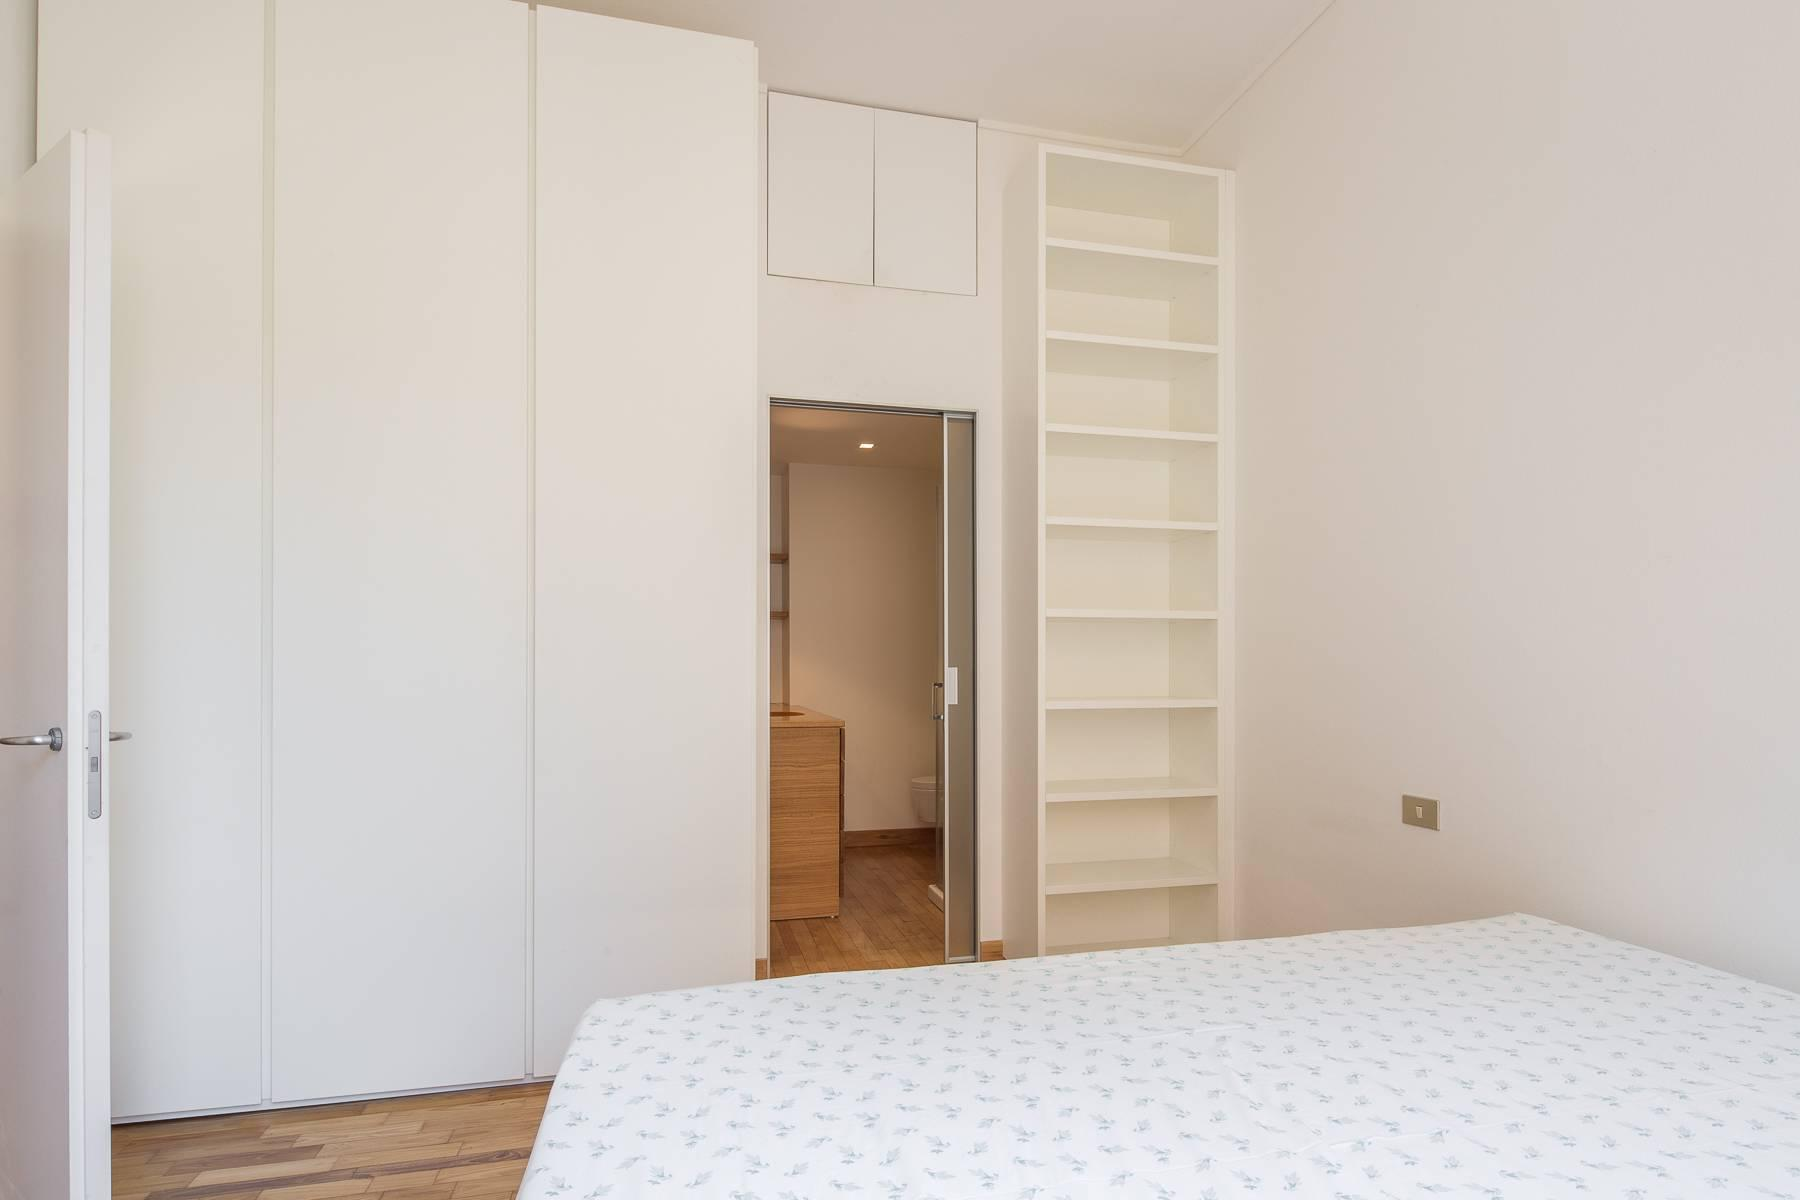 Furnished two-rooms apartment in Cordusio area - 20